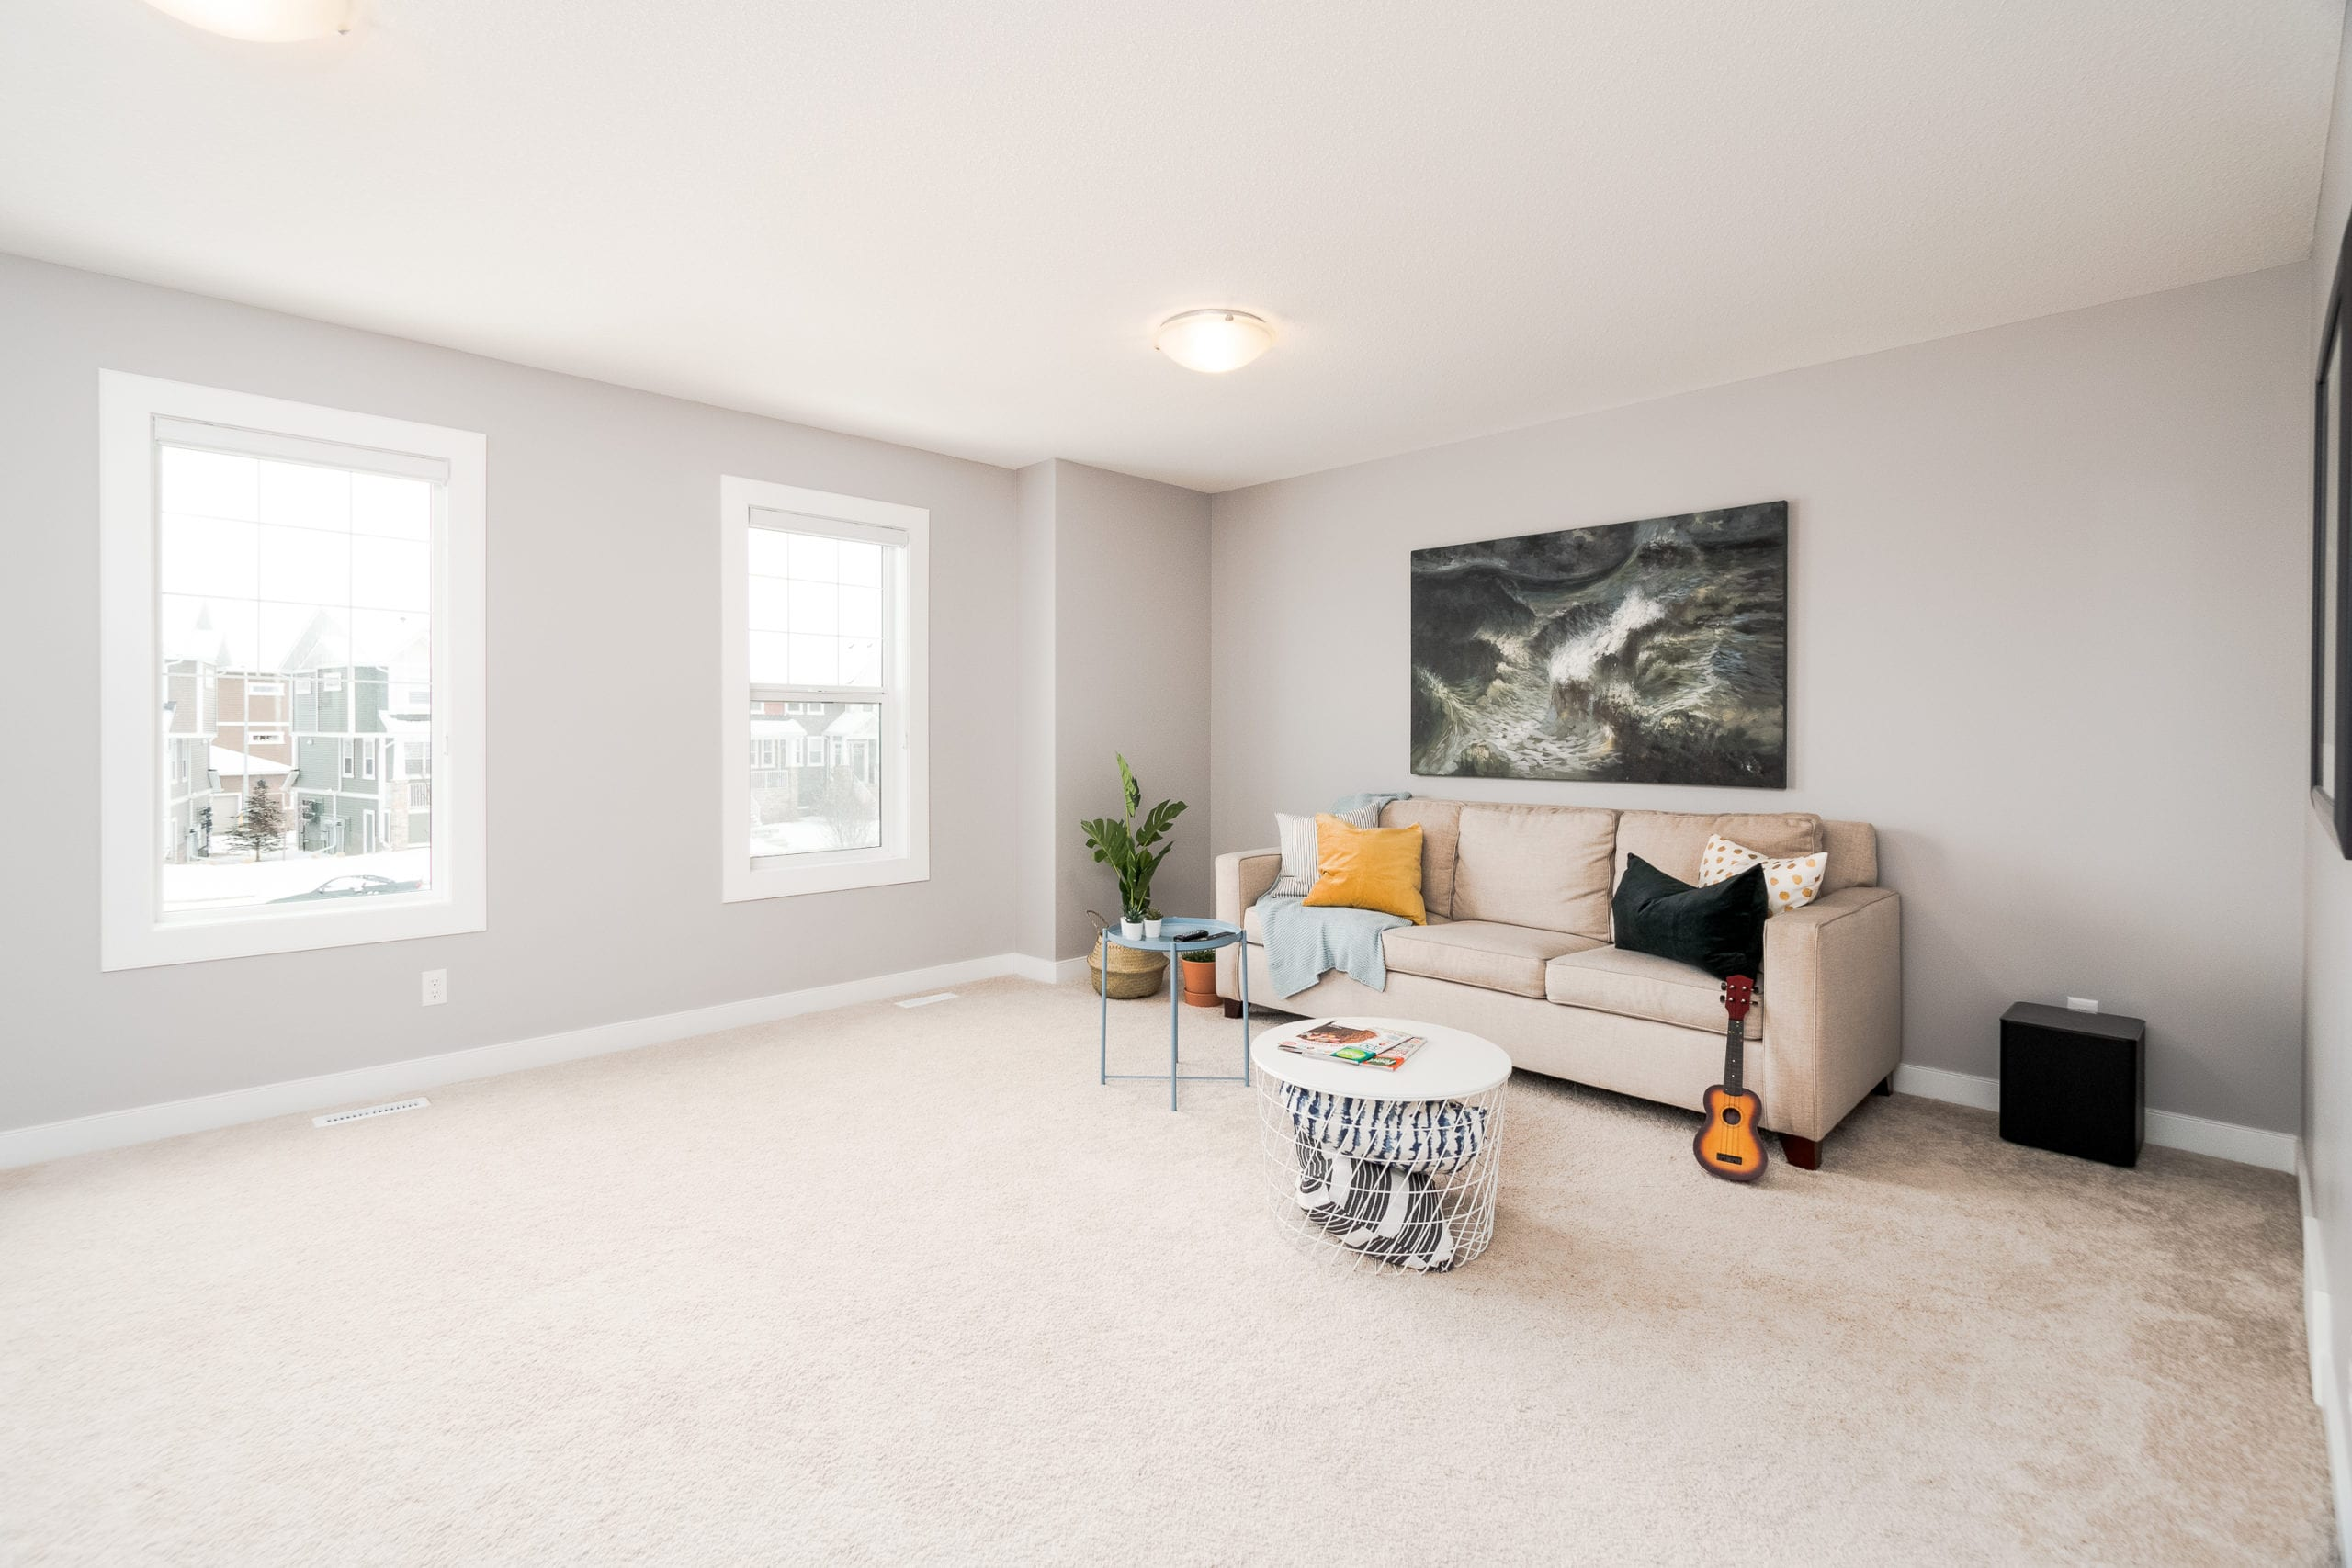 Hello Gorgeous - 1306 Kings Heights Way SE, Airdrie AB. - Tara Molina Real Estate (41 of 53)